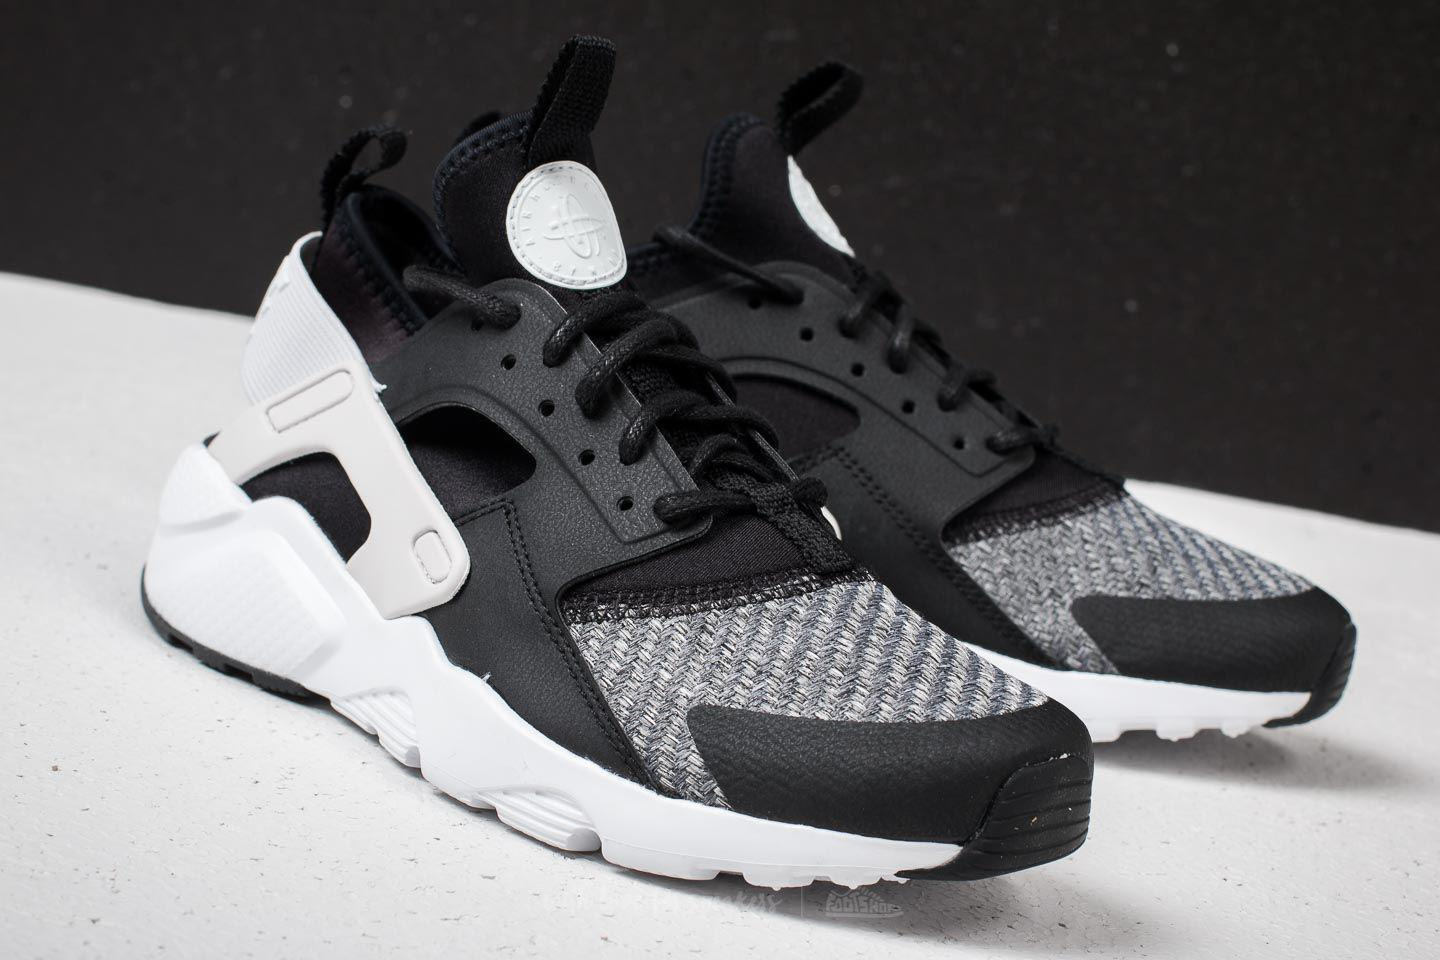 adf89086127c ... new arrivals lyst nike air huarache run ultra se gs black vast grey  white in 69c5d